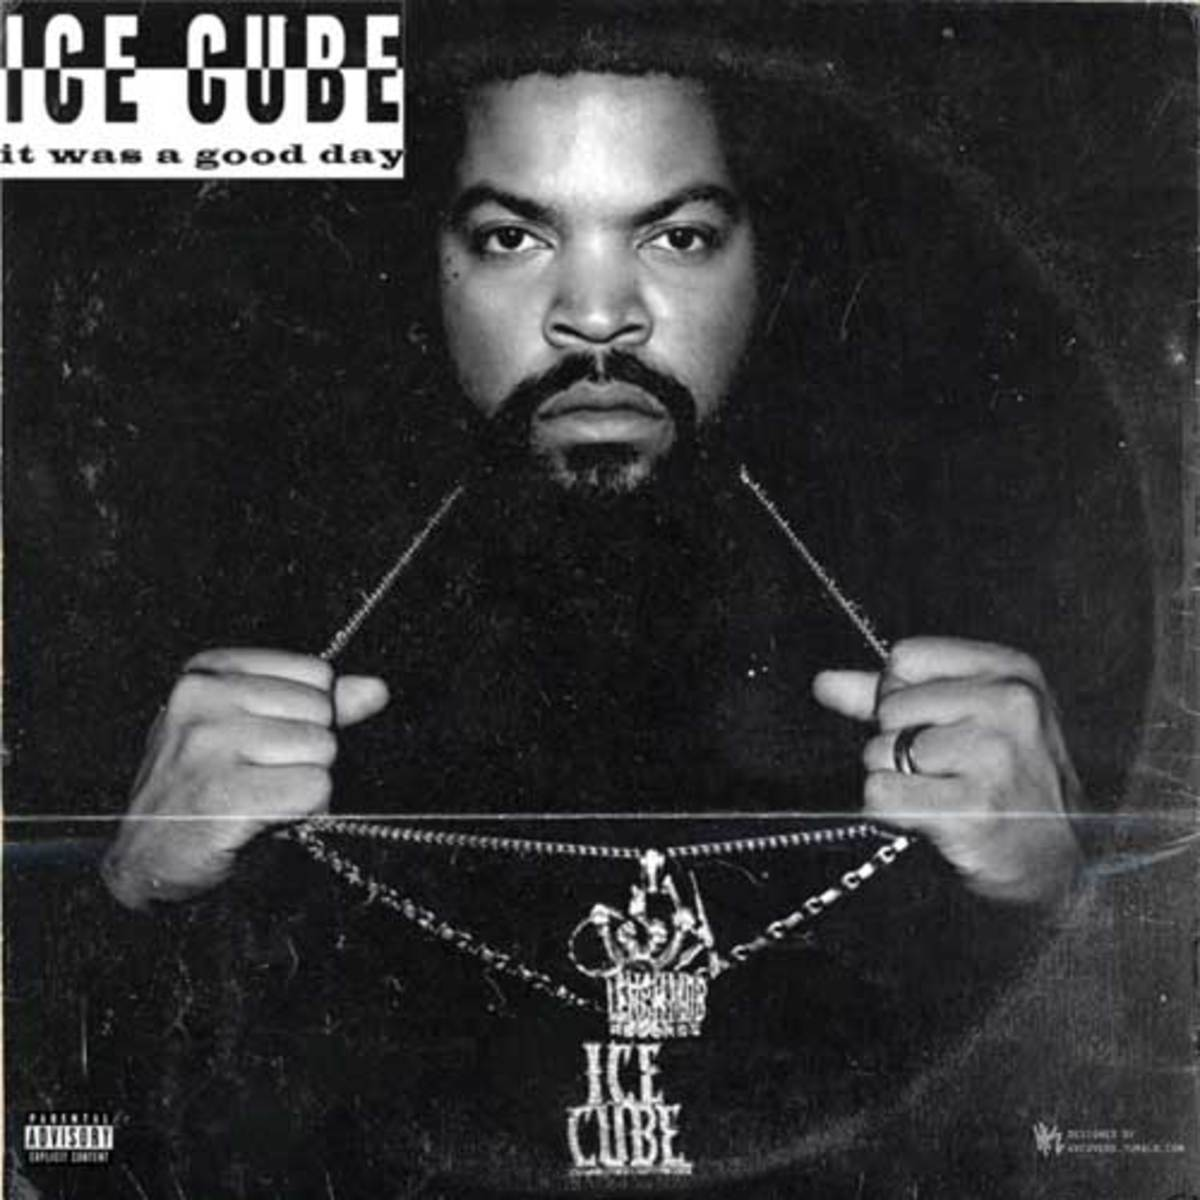 Ice Cube Cover Photo Complete ice cube - it was a good day - djbooth